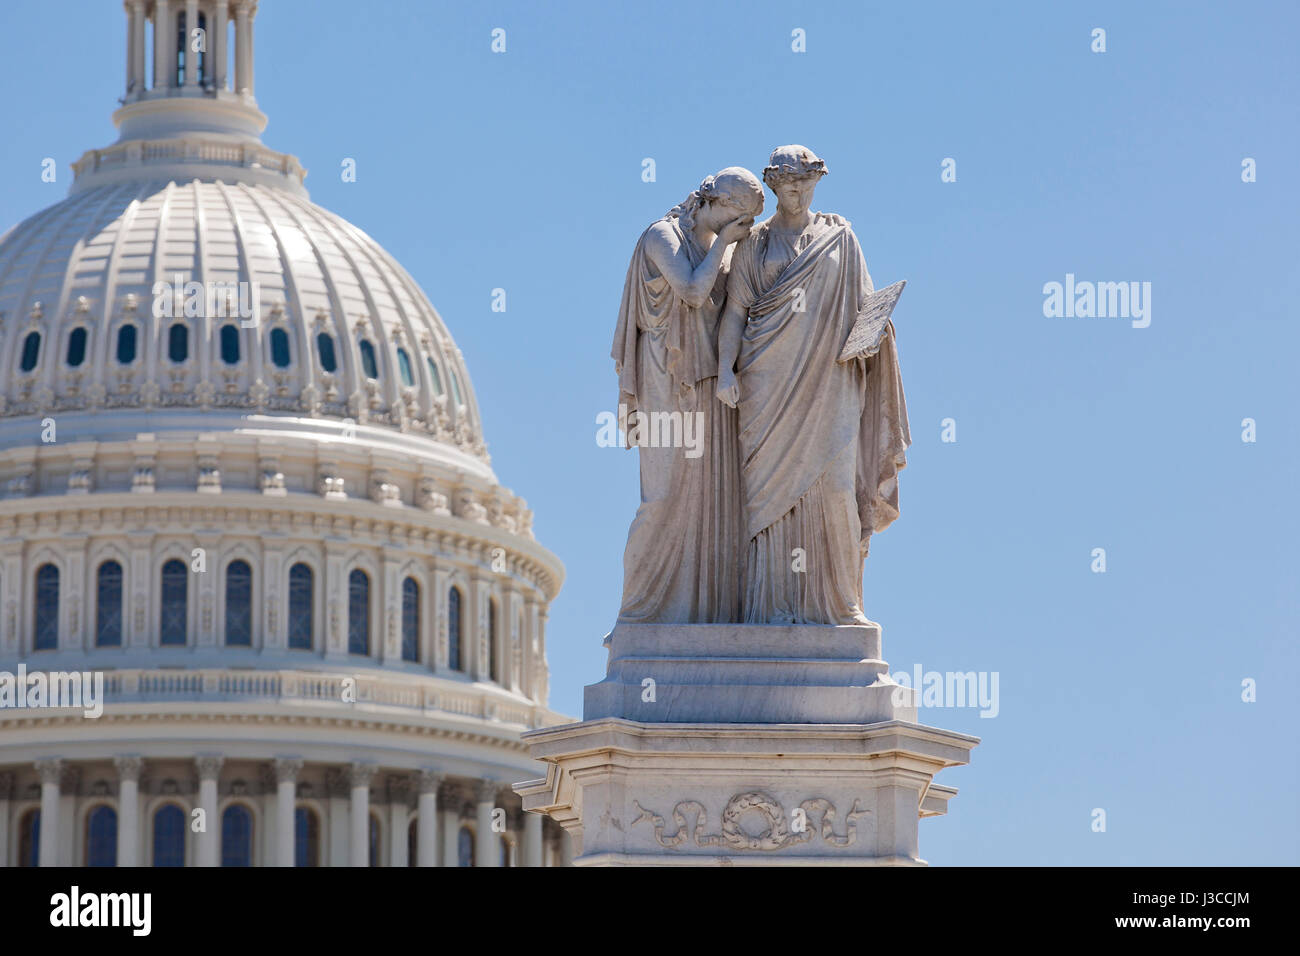 Statue of Grief and History of the Peace Monument at the US Capitol building grounds - Washington, DC USA - Stock Image